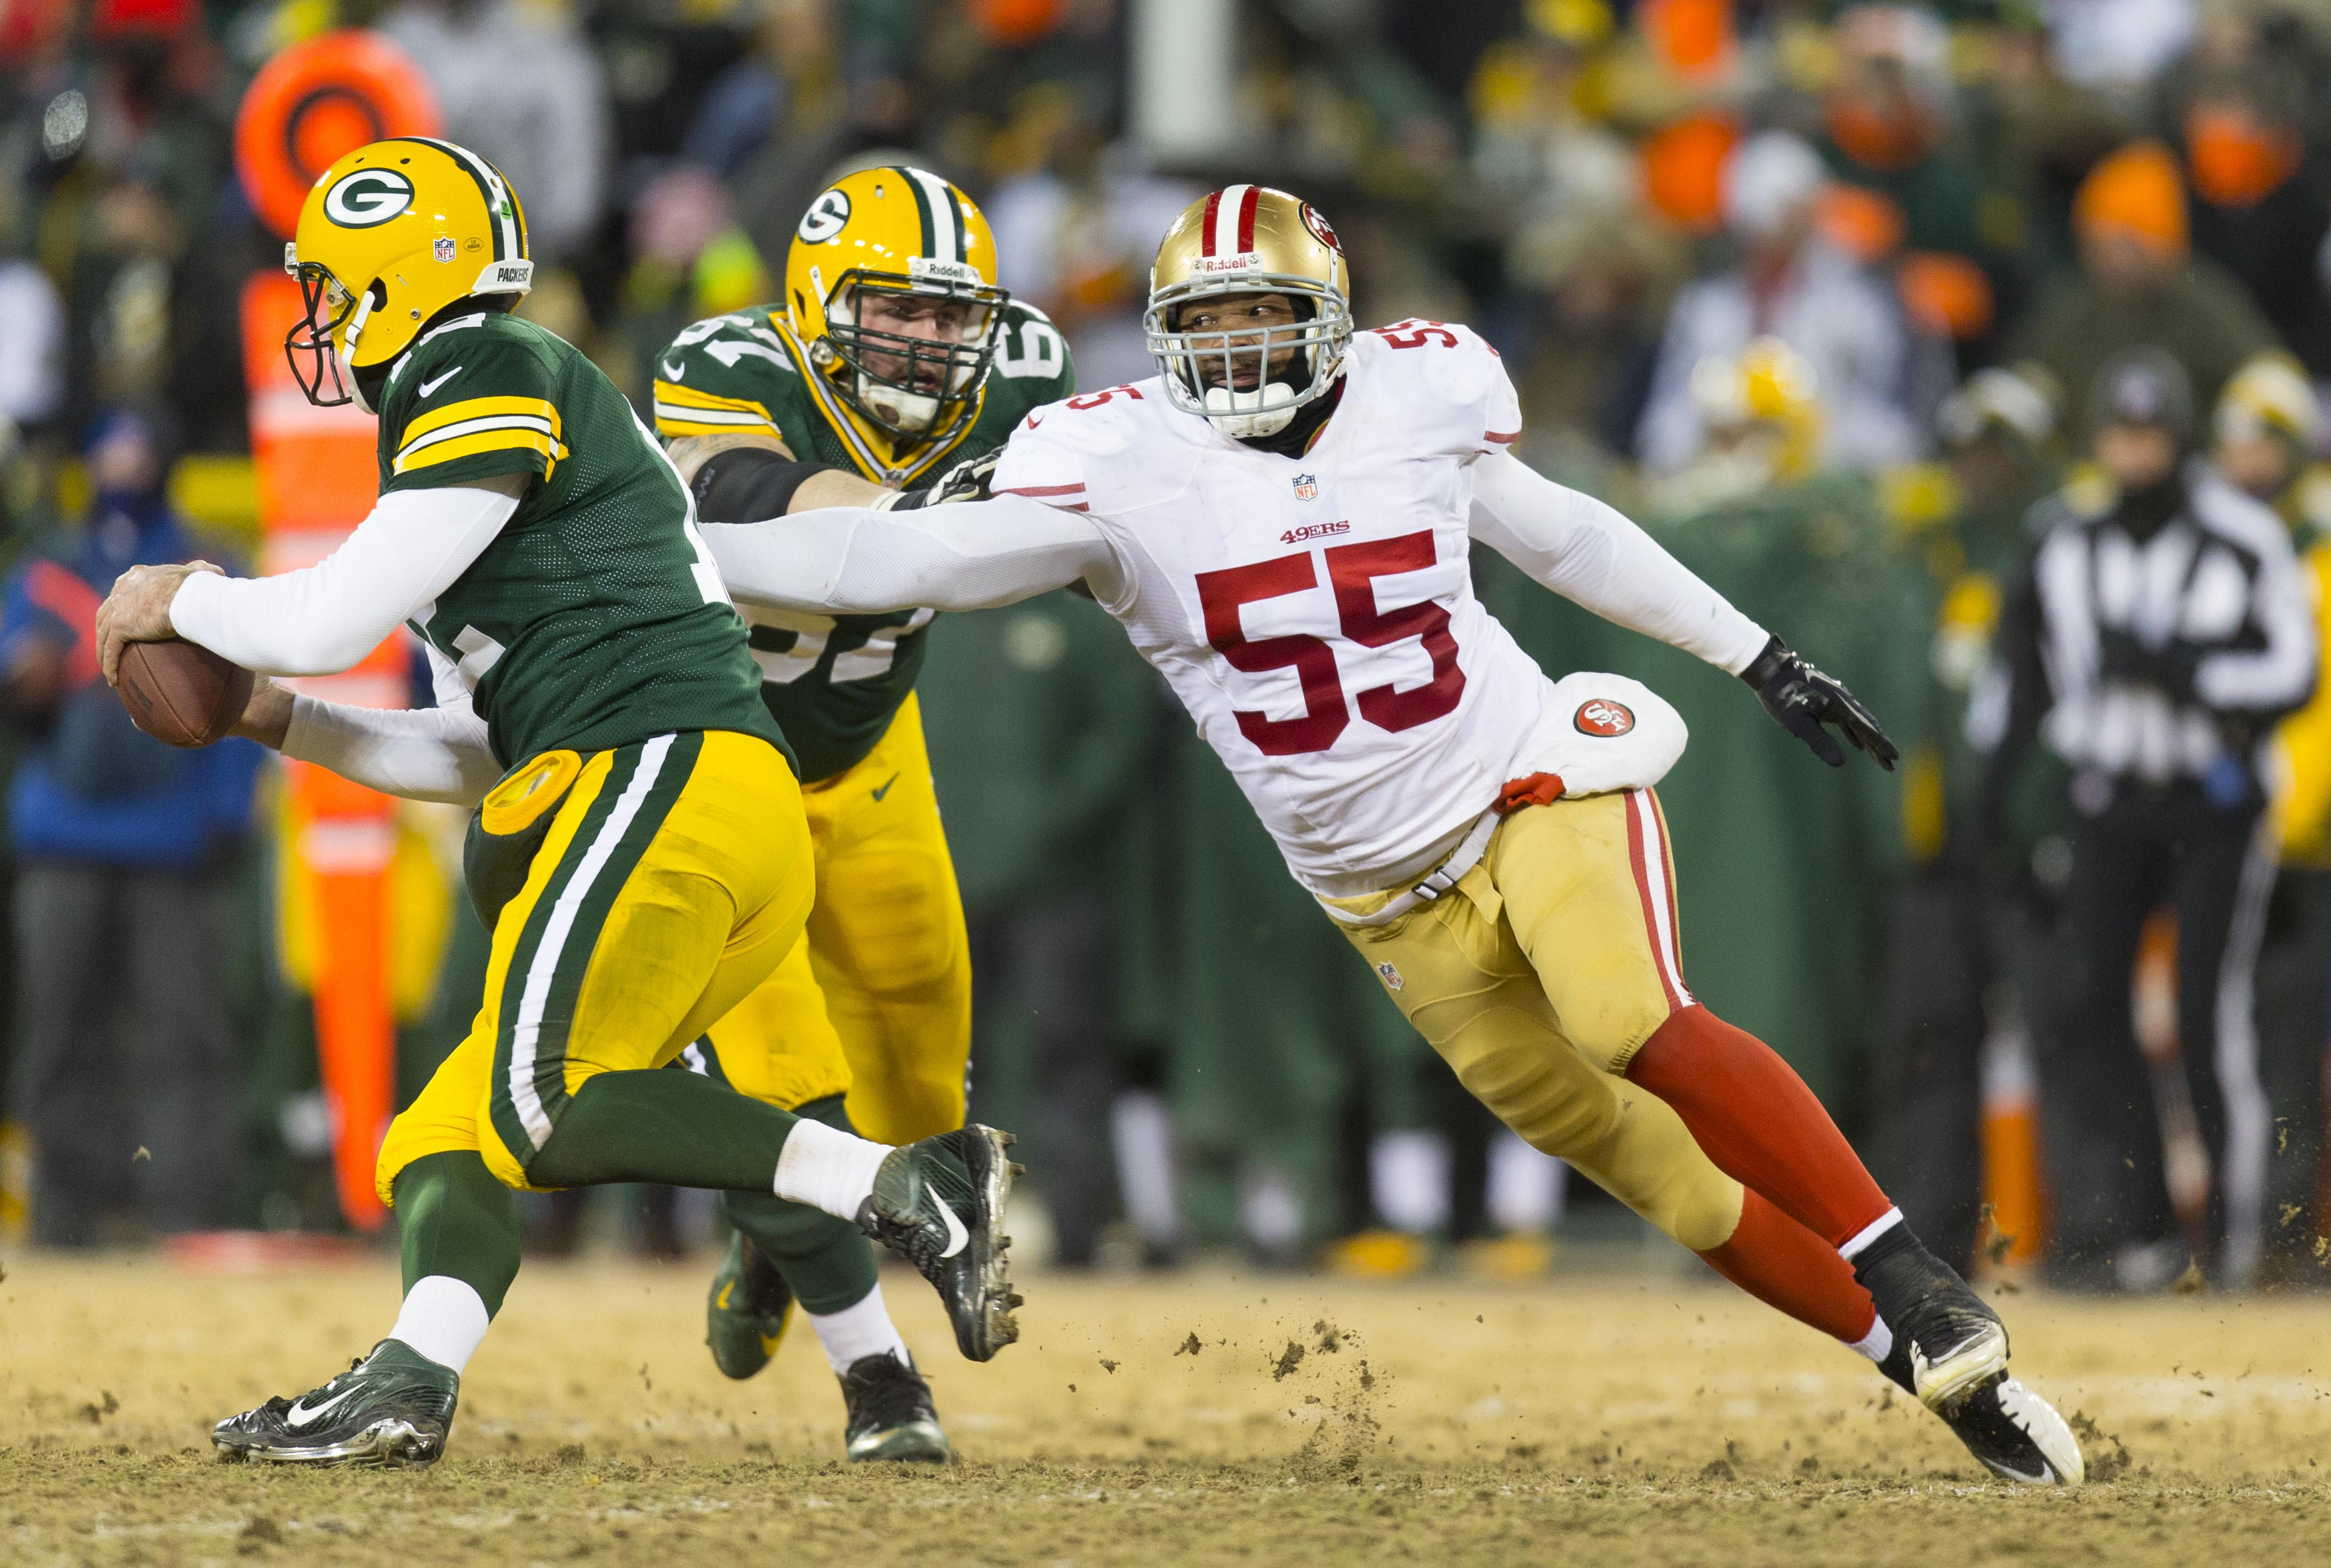 7655967-nfl-nfc-wildcard-playoff-san-francisco-49ers-at-green-bay-packers